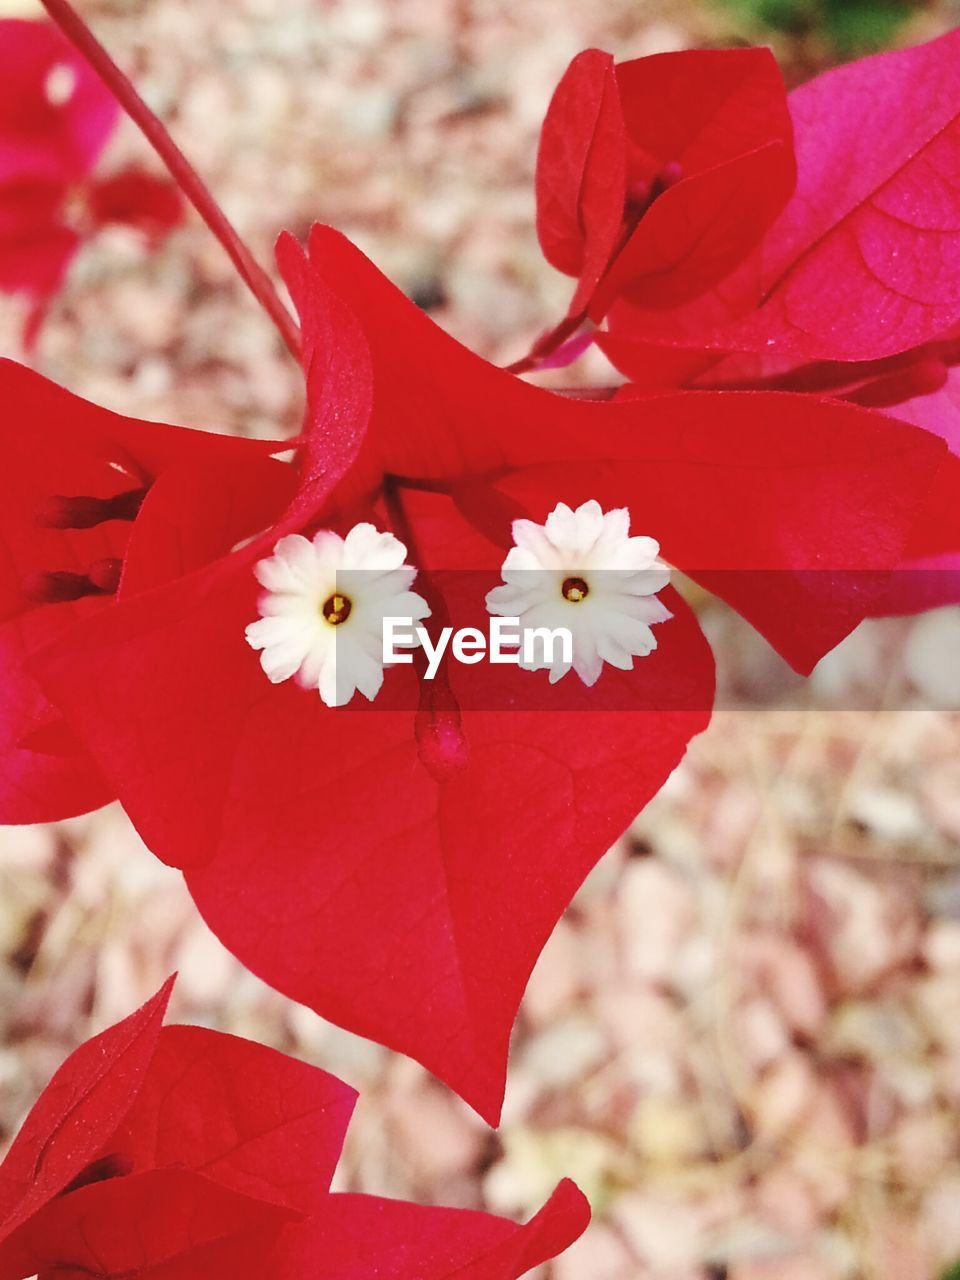 flower, petal, beauty in nature, nature, fragility, red, growth, flower head, close-up, blossom, freshness, no people, outdoors, plant, day, focus on foreground, springtime, branch, blooming, tree